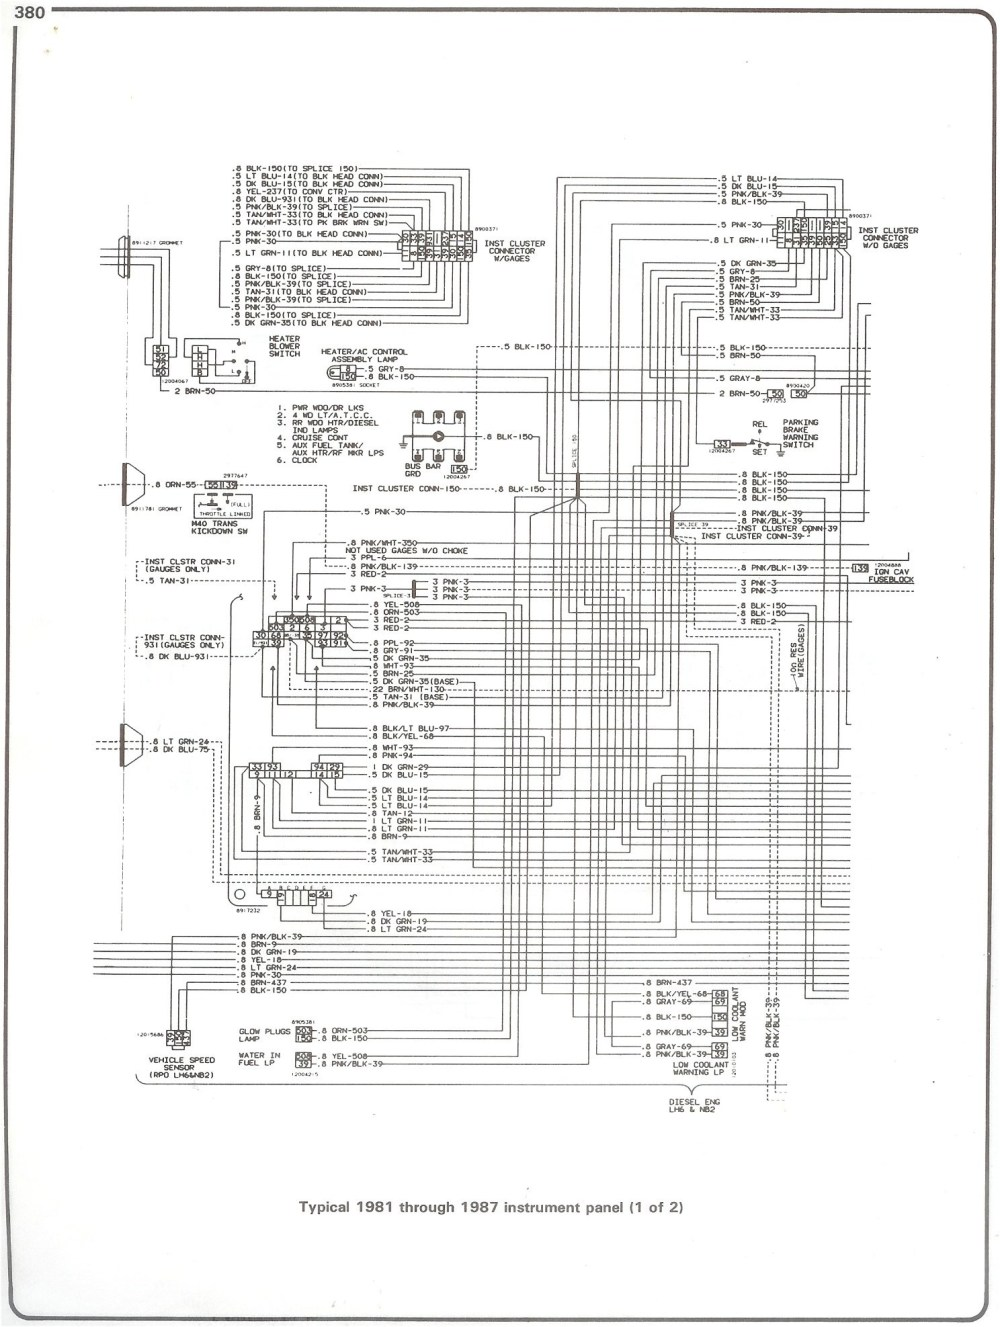 medium resolution of 1974 chevrolet truck wiring diagram wiring diagram user wiring diagram for 1974 chevy truck 1974 chevy